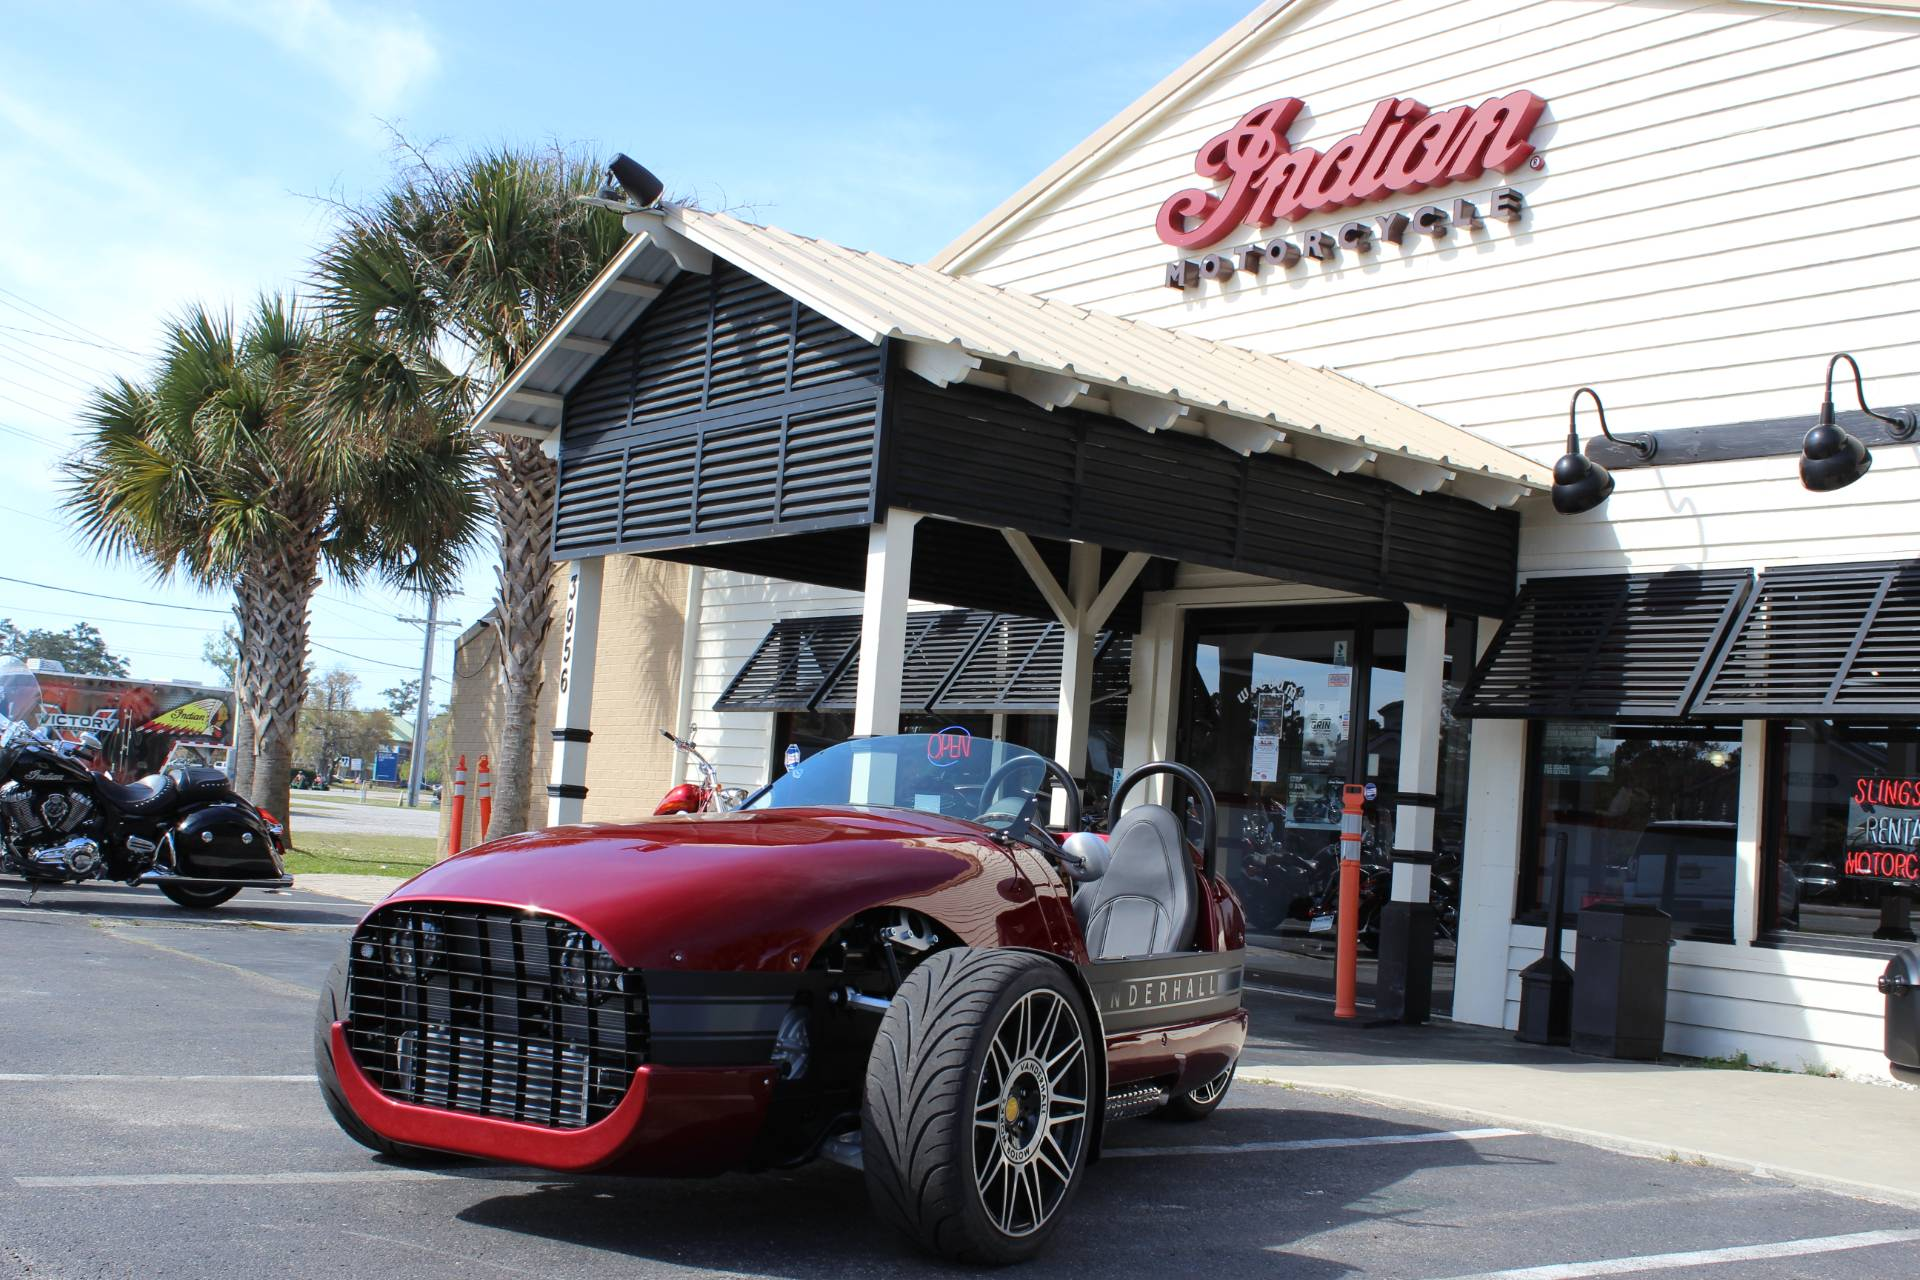 2018 Vanderhall Motor Works Venice in Murrells Inlet, South Carolina